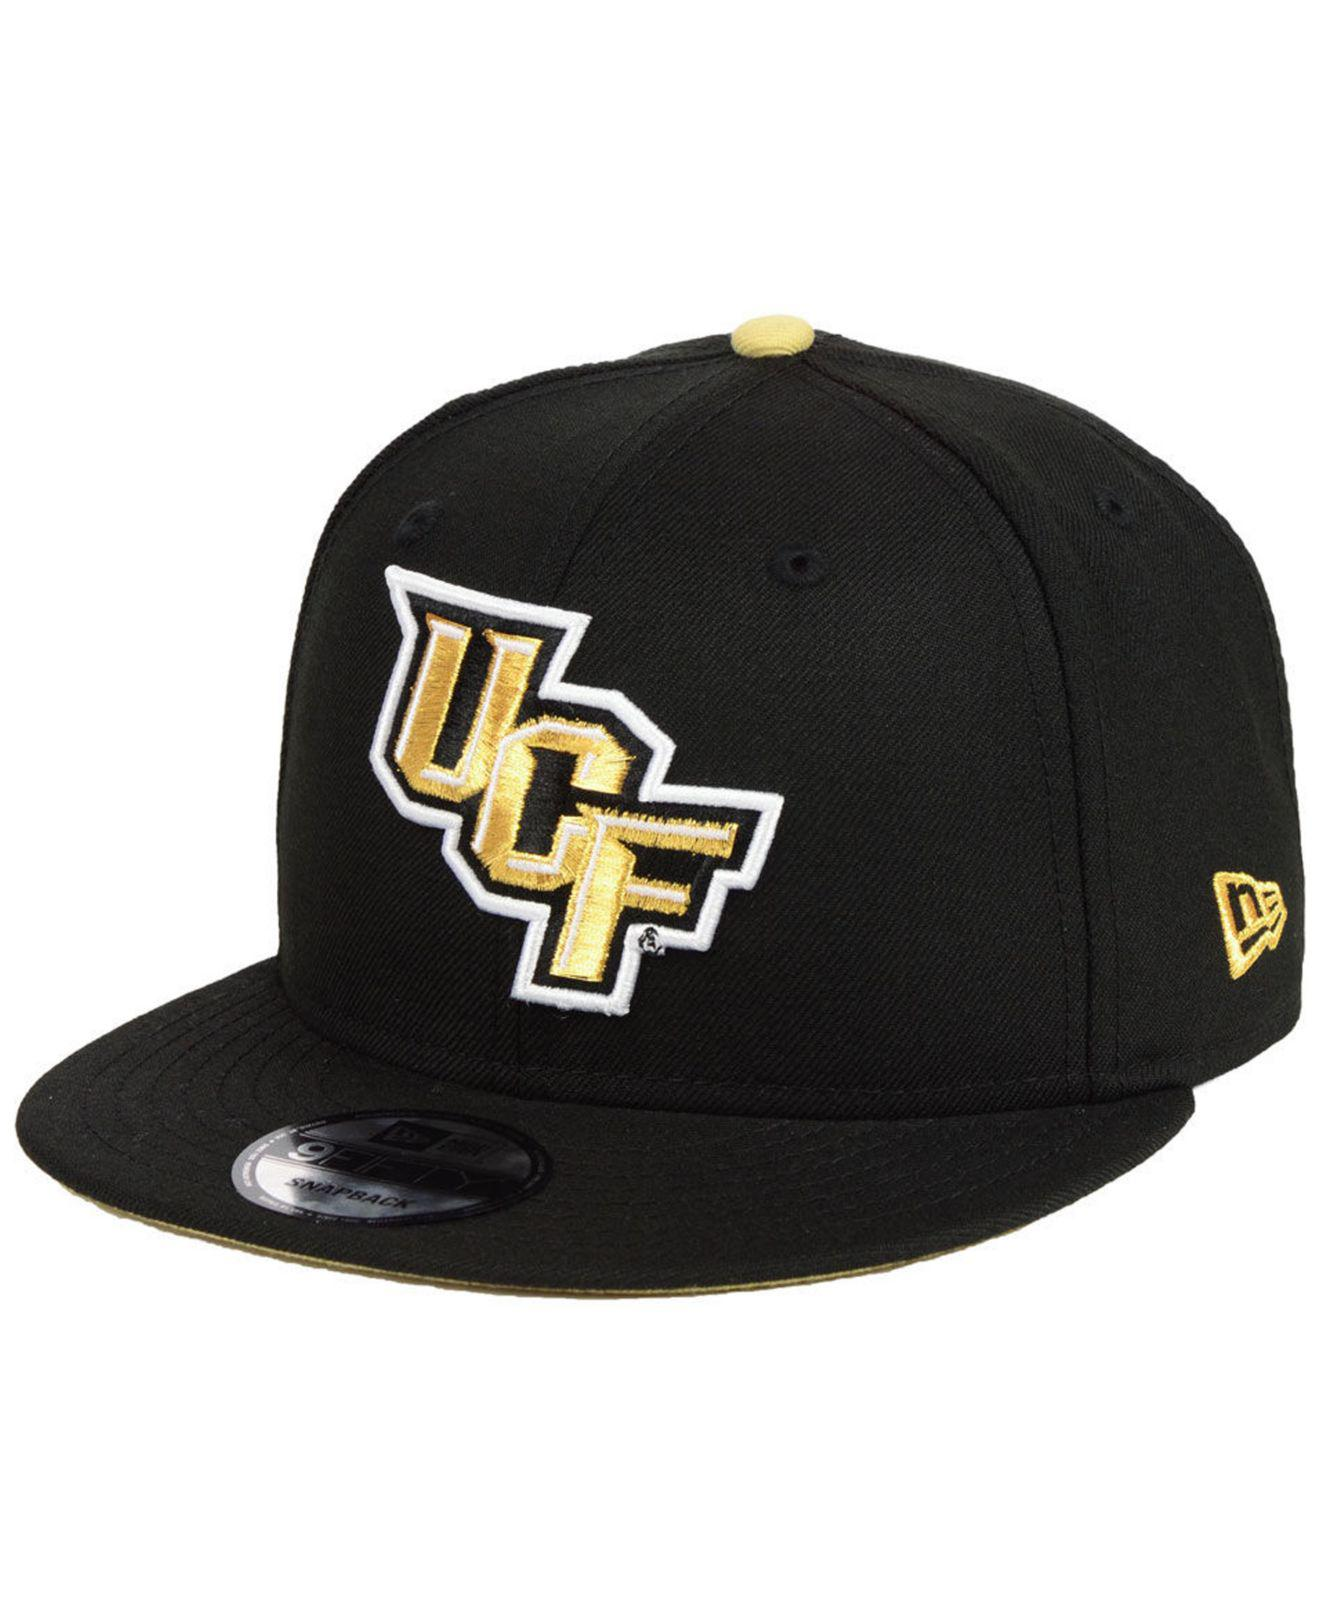 a57fd21ed new arrivals university of central florida knights new era ncaa ...